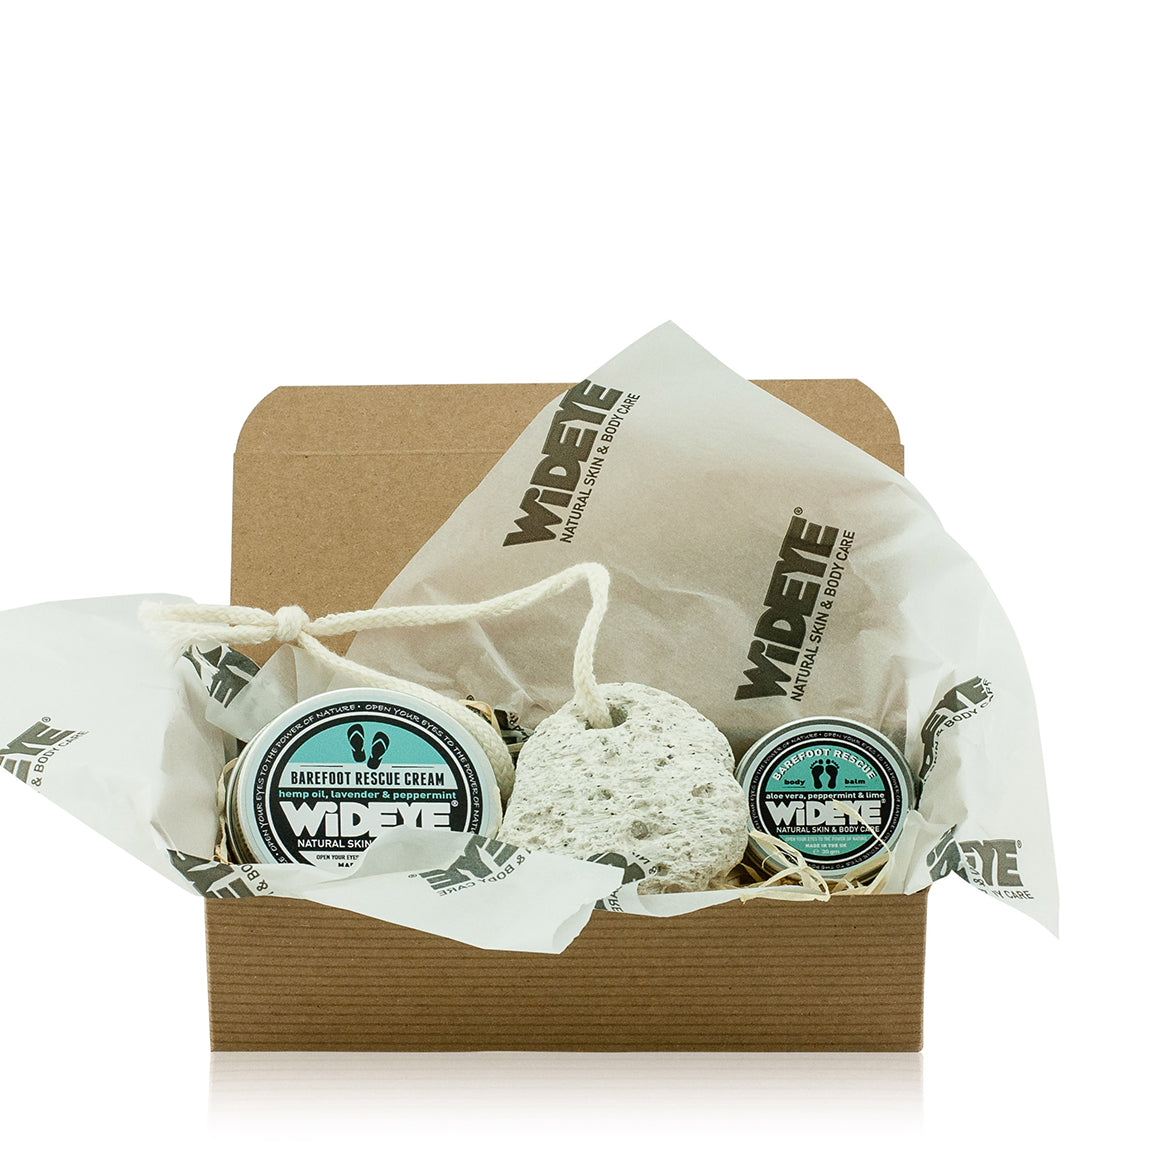 Natural Christmas Foot Care Gift with Peppermint Foot Cream, Foot Balm and a Volcanic Lava Pumice Stone.